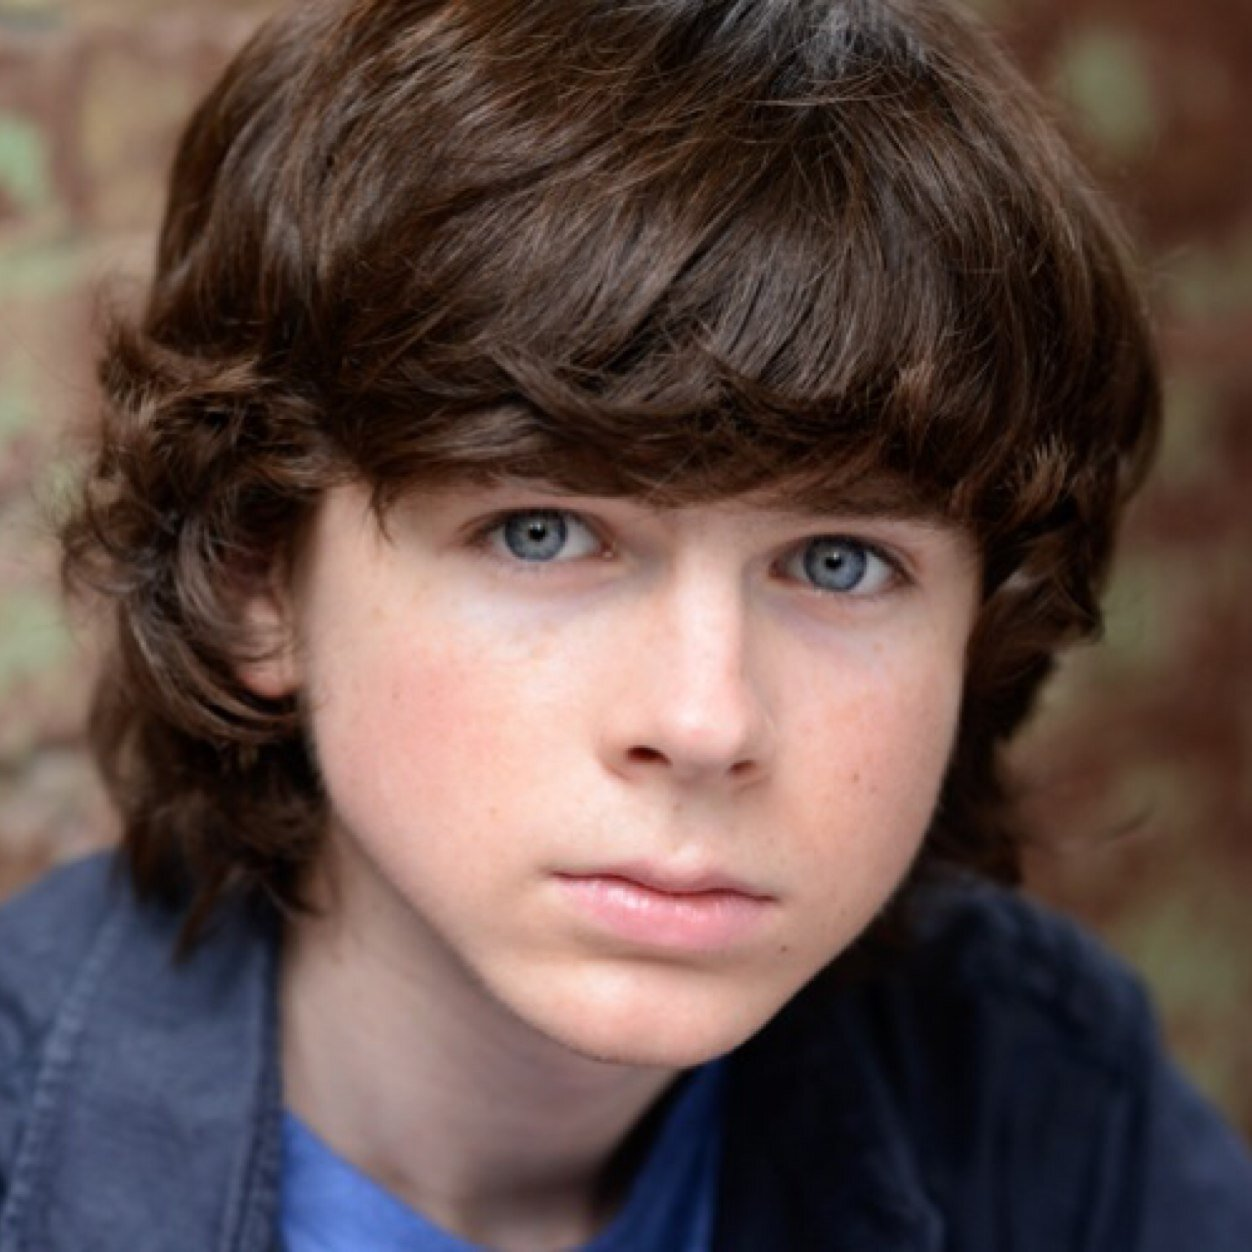 Chandler Riggs earned a  million dollar salary - leaving the net worth at 1 million in 2017